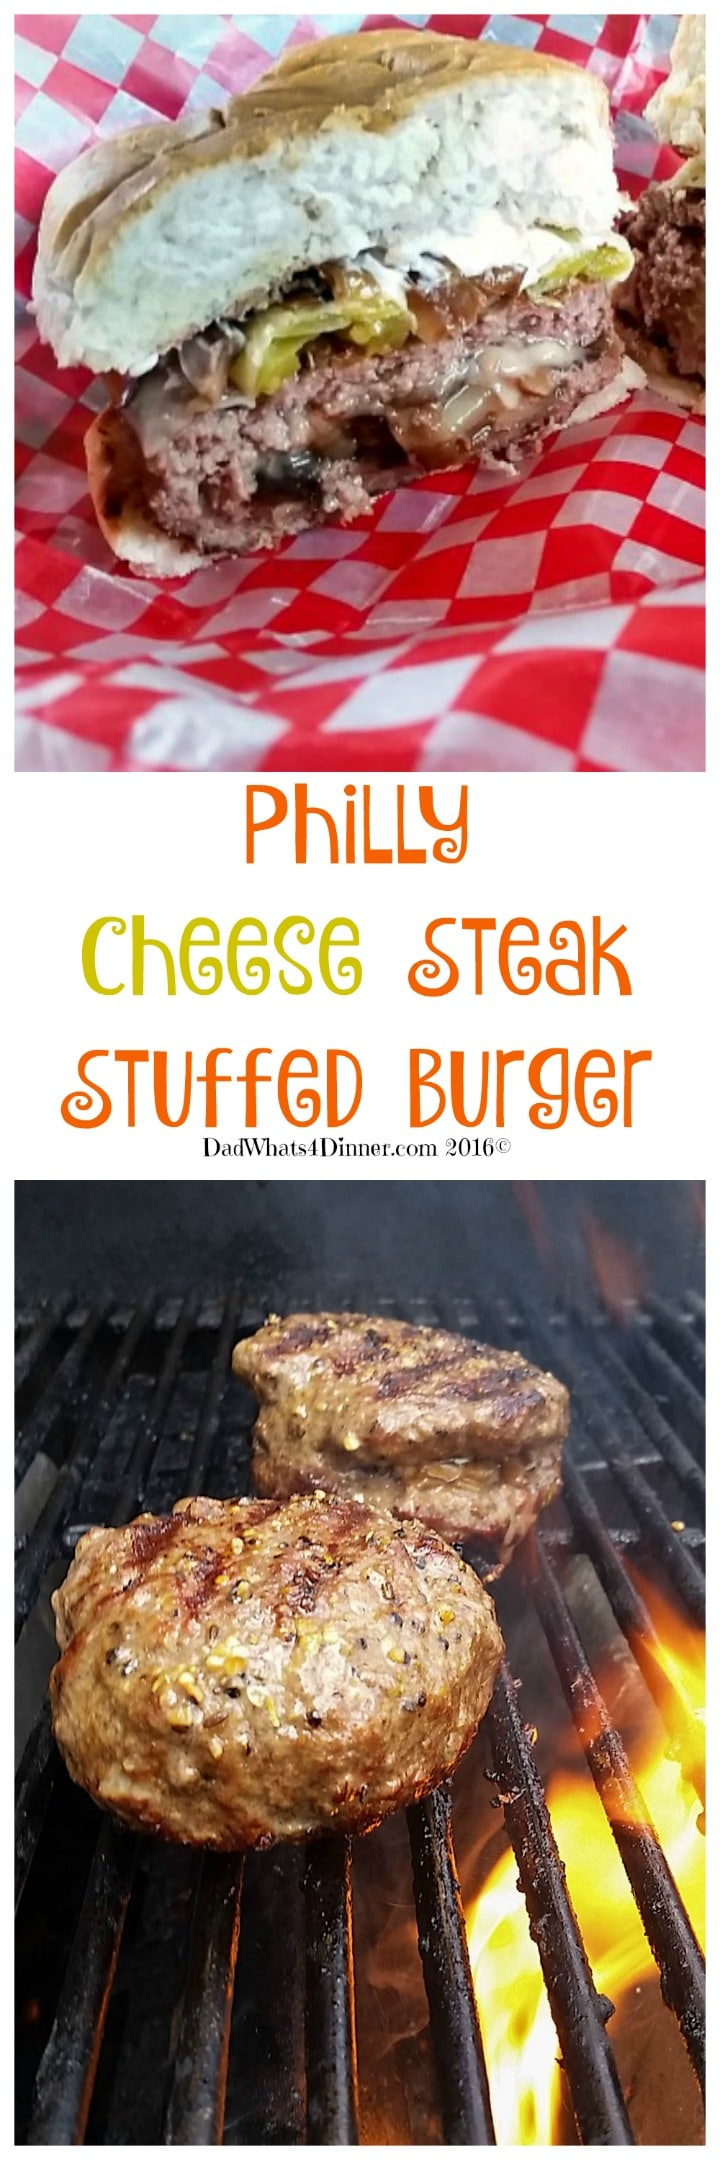 Get your grill ready for Labor Day with this awesome Philly Cheese Steak Burgers recipe. Great twist on my favorites; Cheese Steak and Burgers.